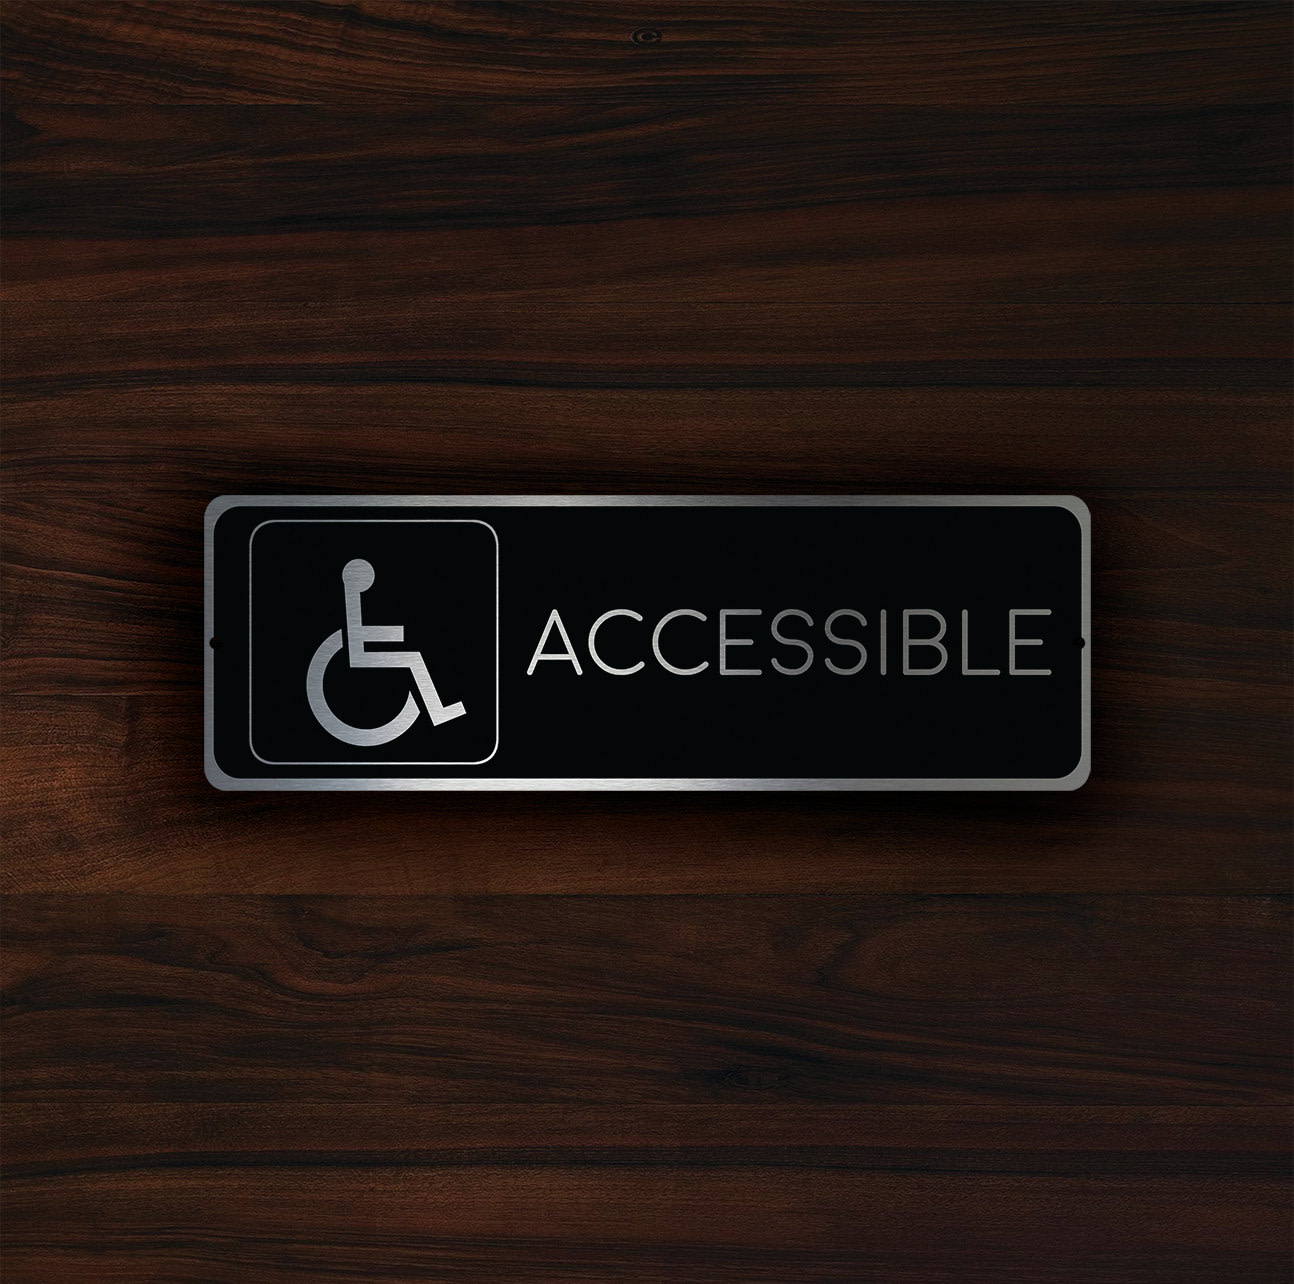 ACCESSIBLE RESTROOM SIGN